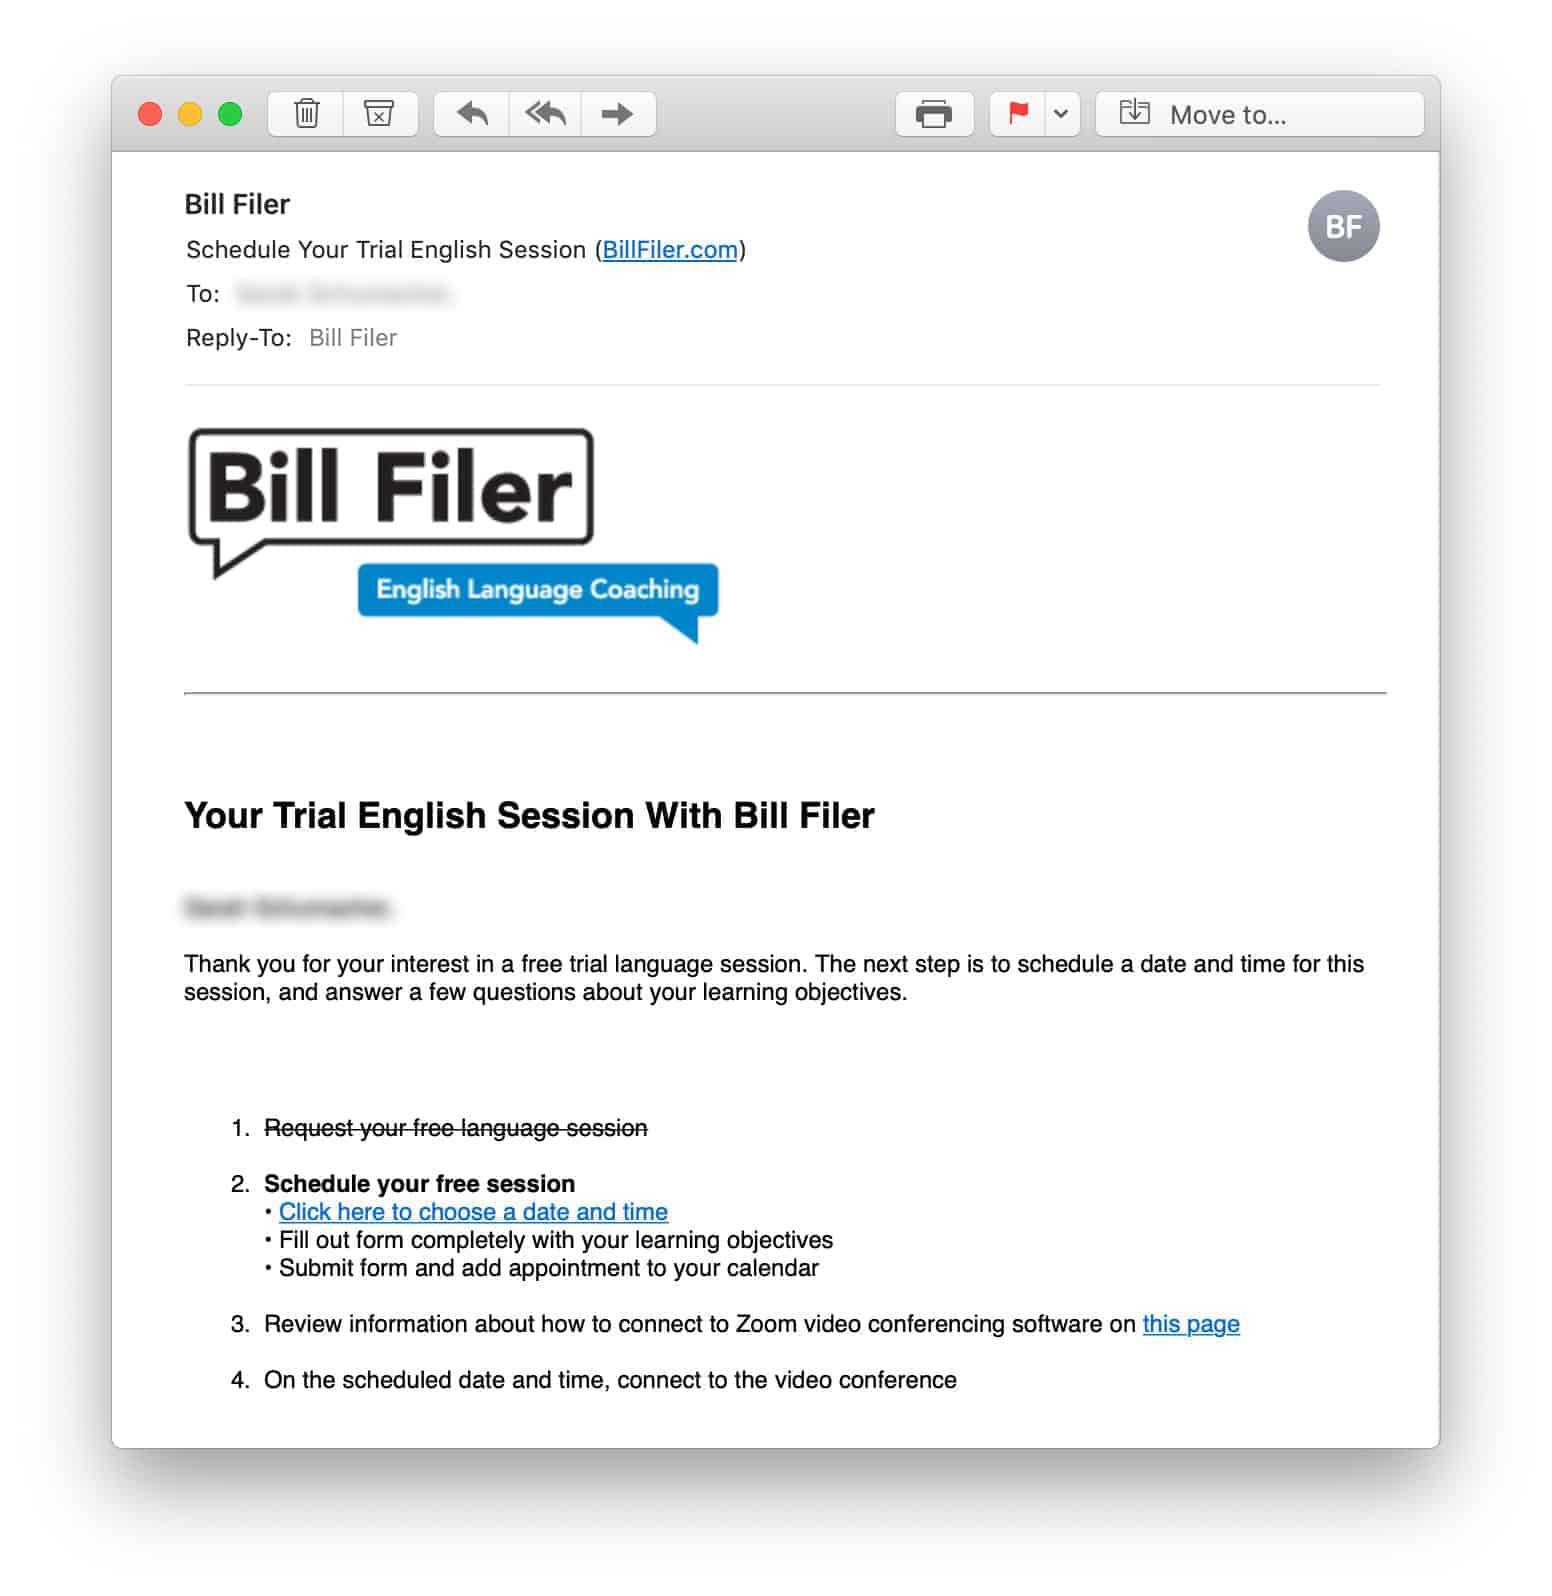 bill-filer-email-to-schedule-session